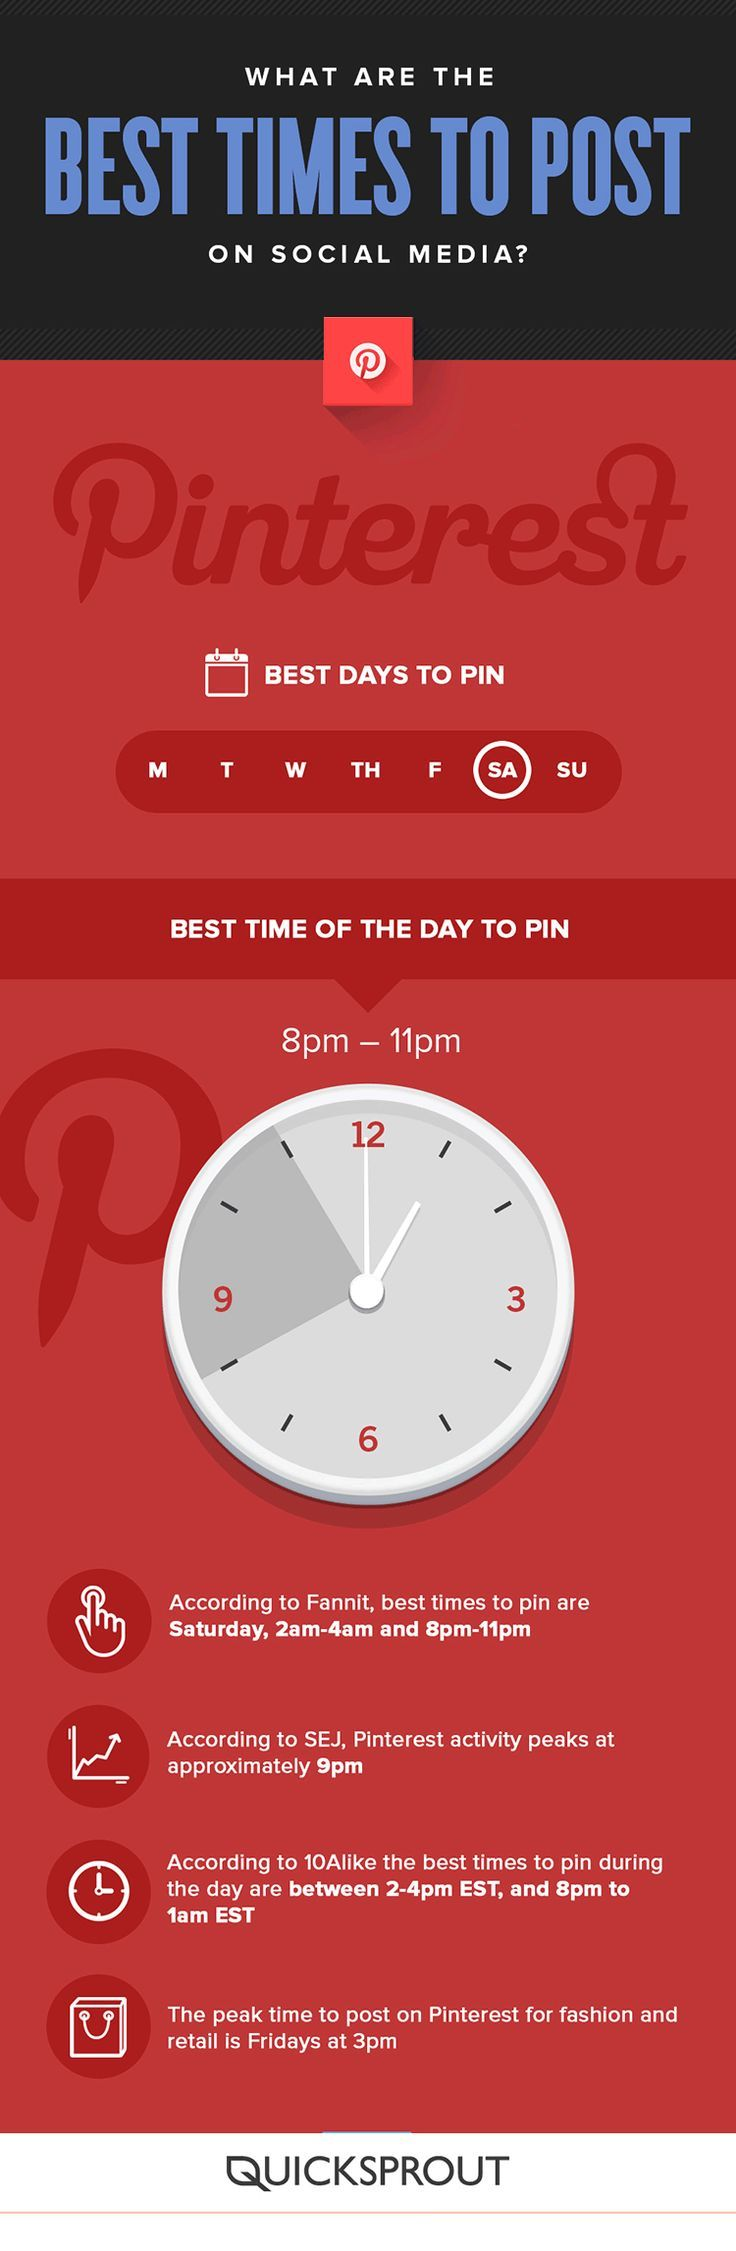 Marketing on Pinterest? These best times to pin might work for your business - or not. Click to blog to learn how to find YOUR best times to pin! Grow your Pinterest followers and website traffic when you time your pins right. #pinteresttips #smmtips